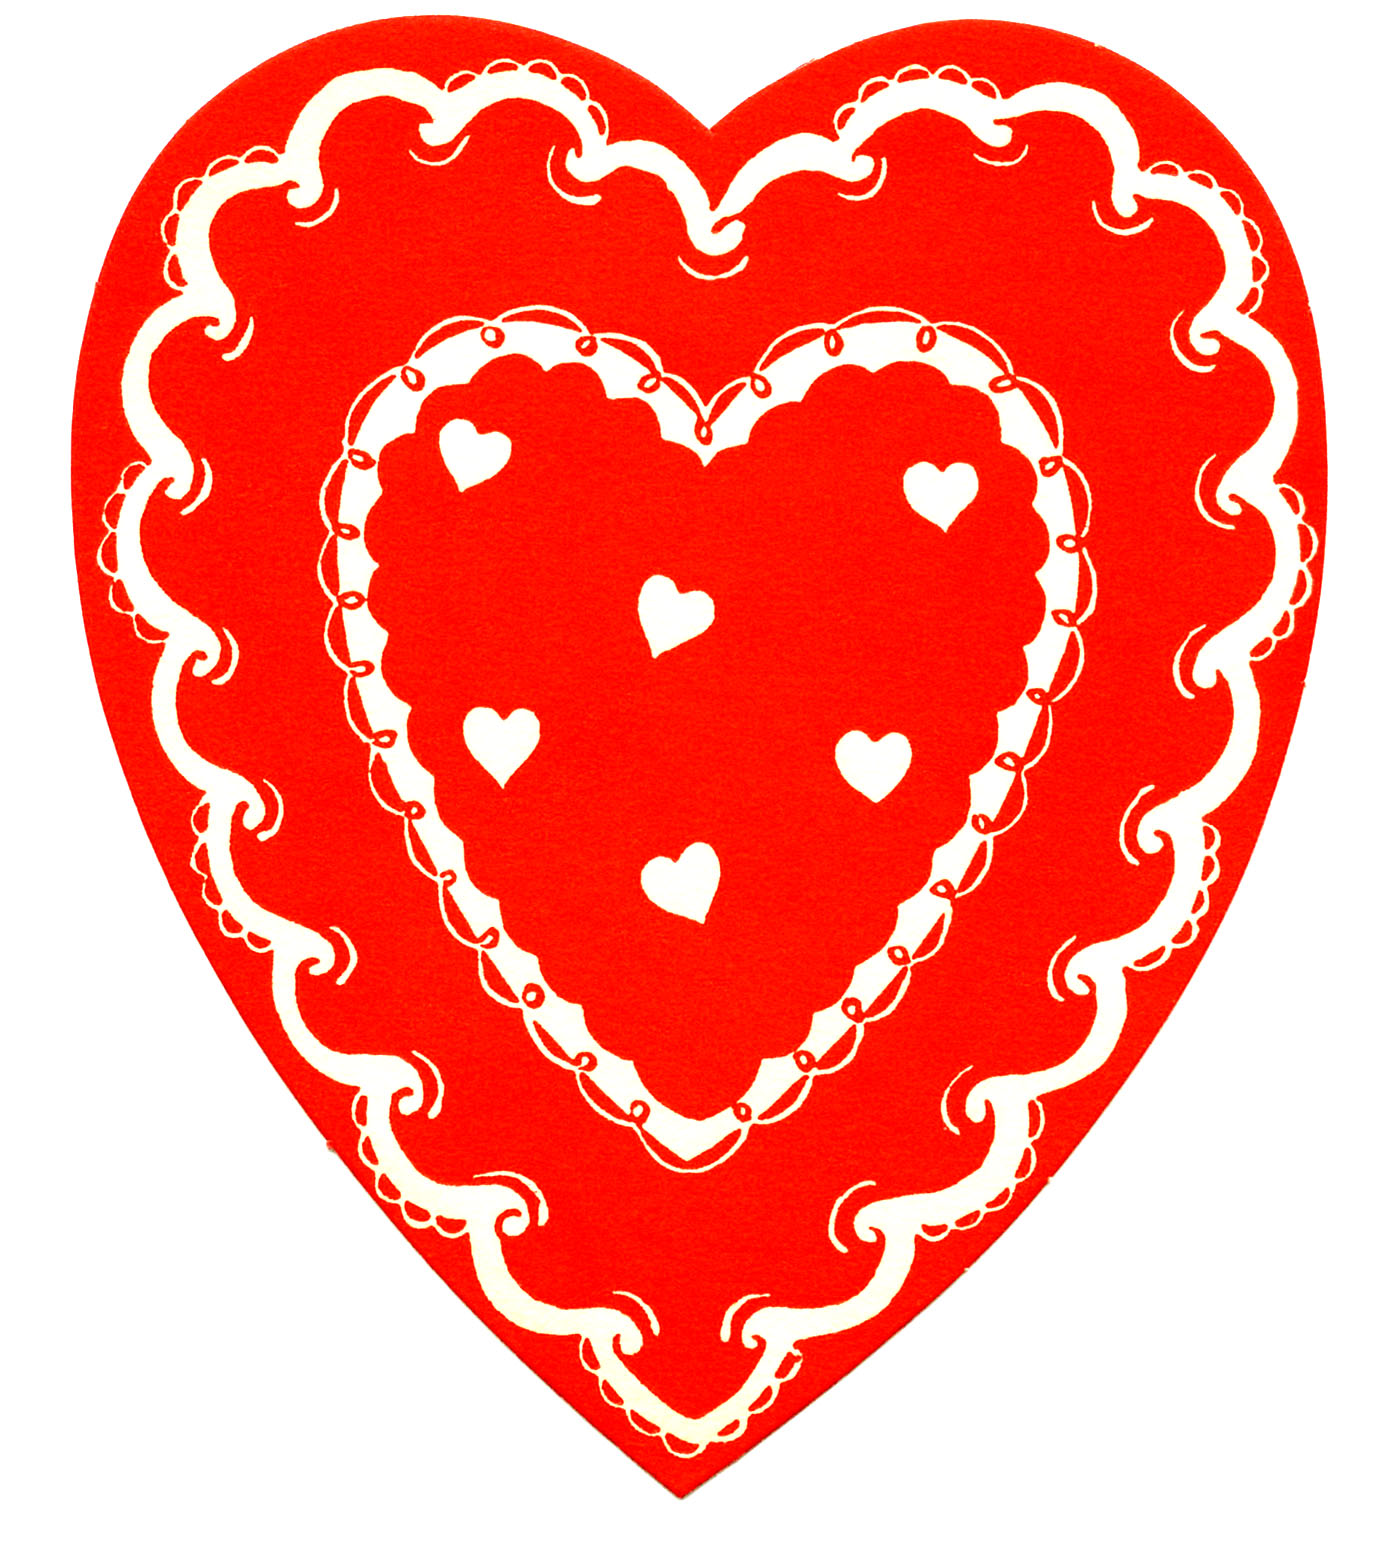 Heart Clipart Image: Red Heart. Vintage -Heart Clipart Image: Red Heart. Vintage Valentine-5